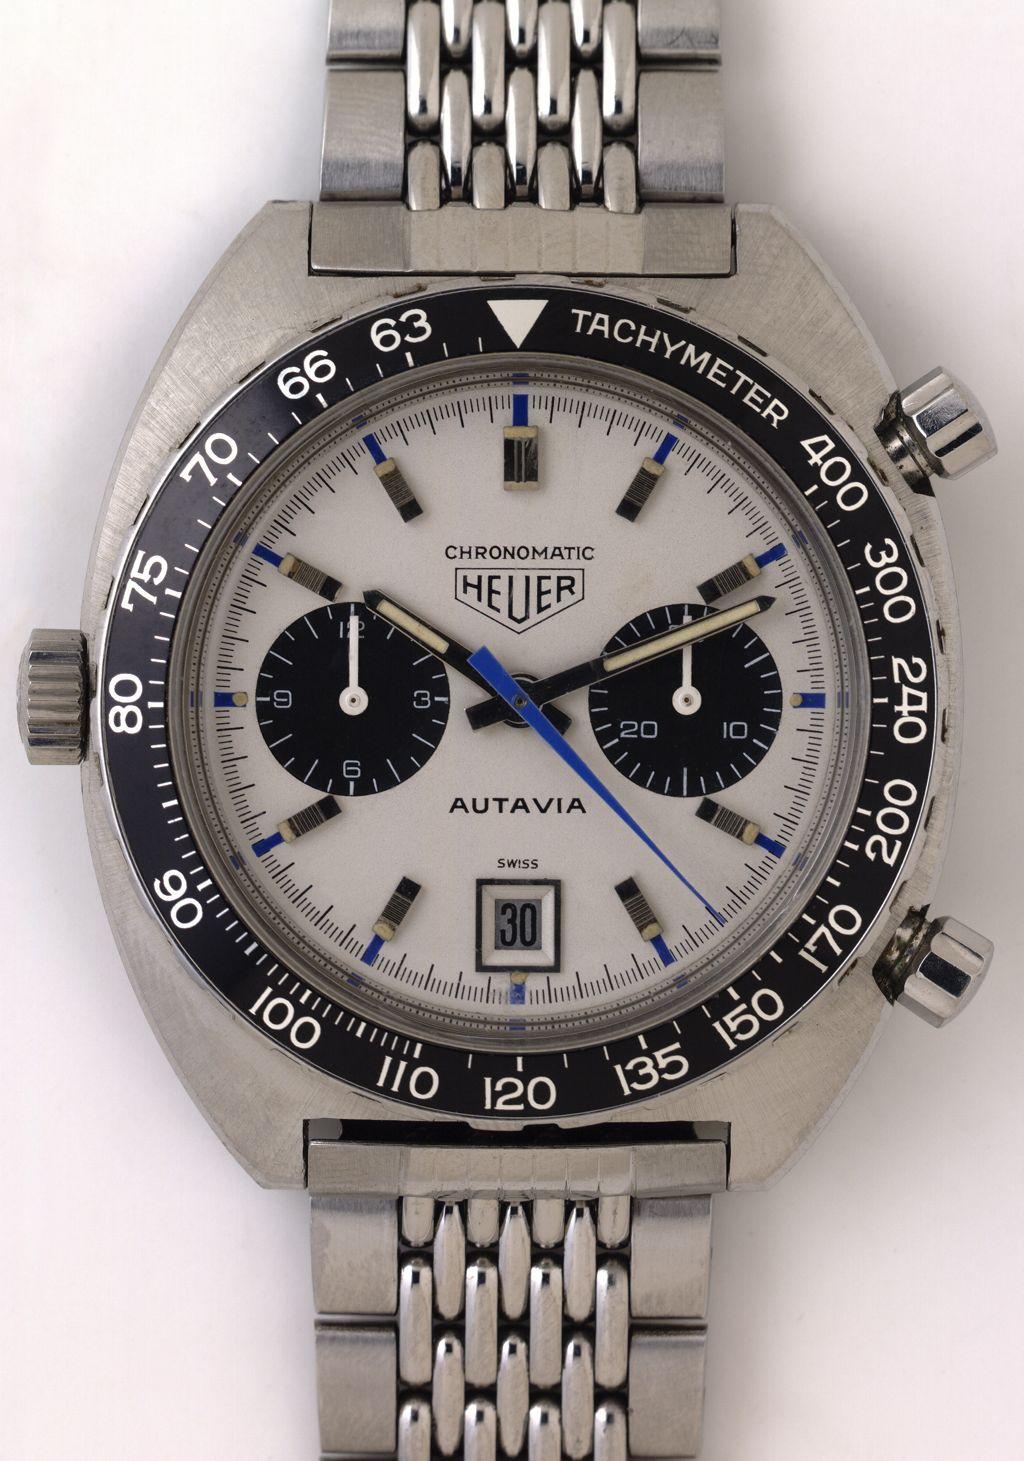 Heuer Chronomatic Autavia 1163T Sieffert